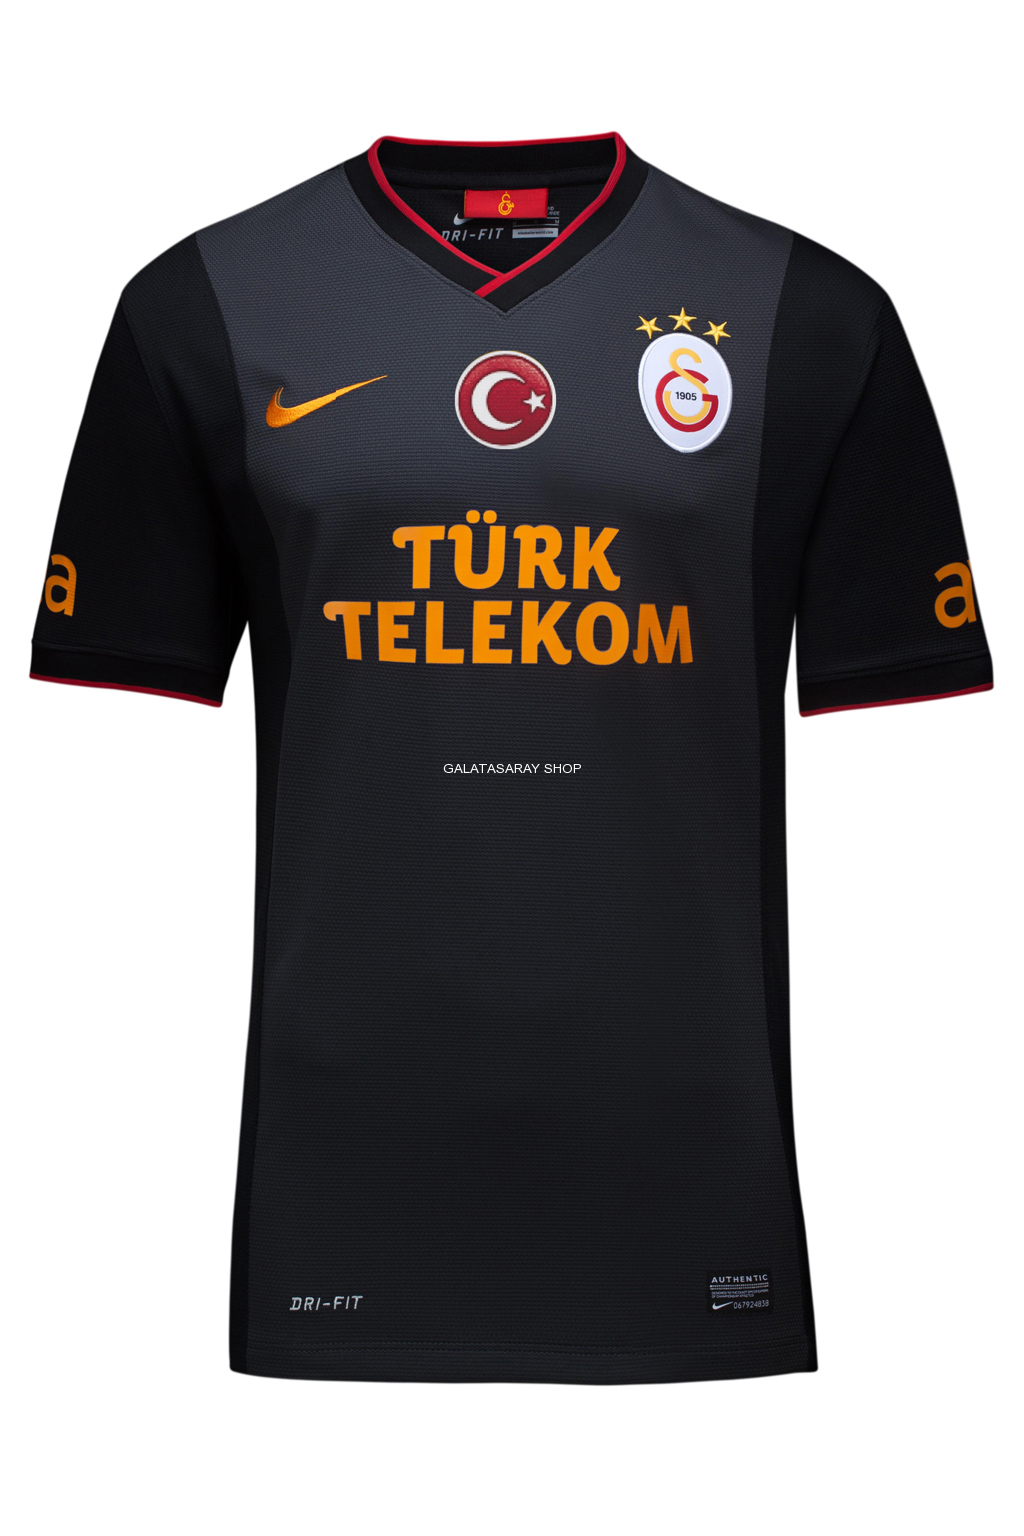 Galatasaray Away Jersey 13/14 from Nike at Galatasaray Shop # 544884